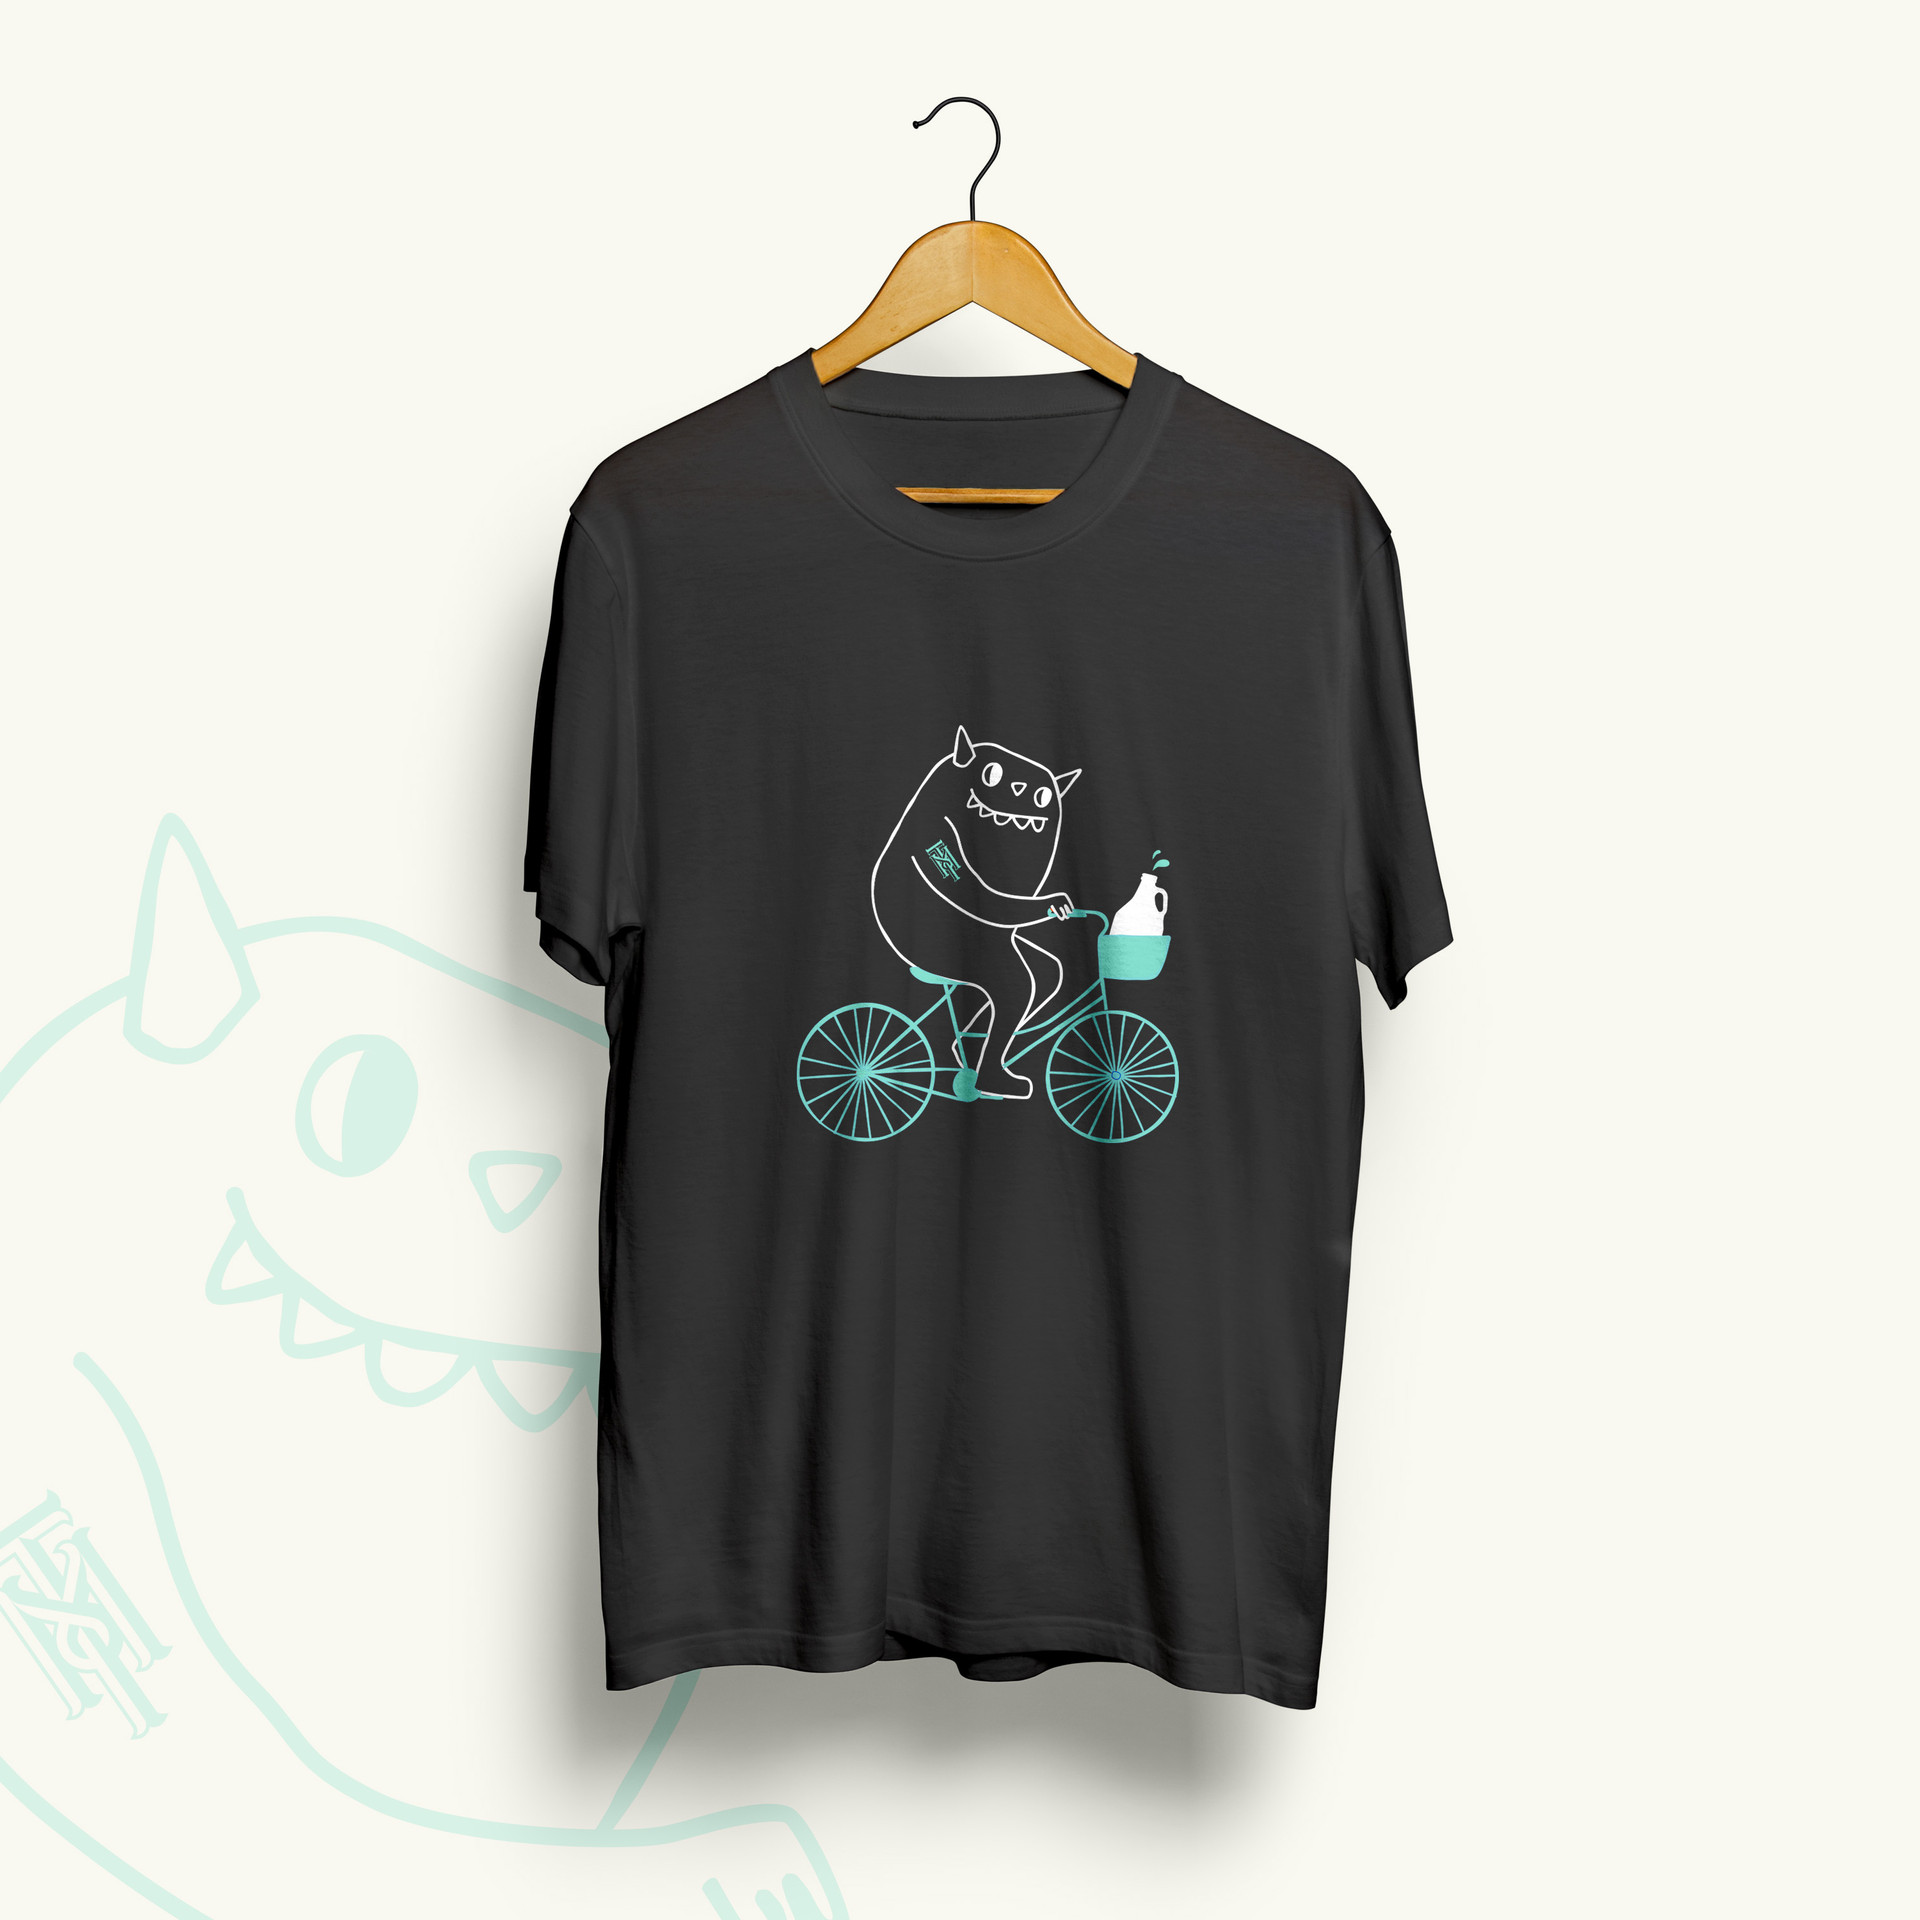 Tinman T-Shirt - Biking